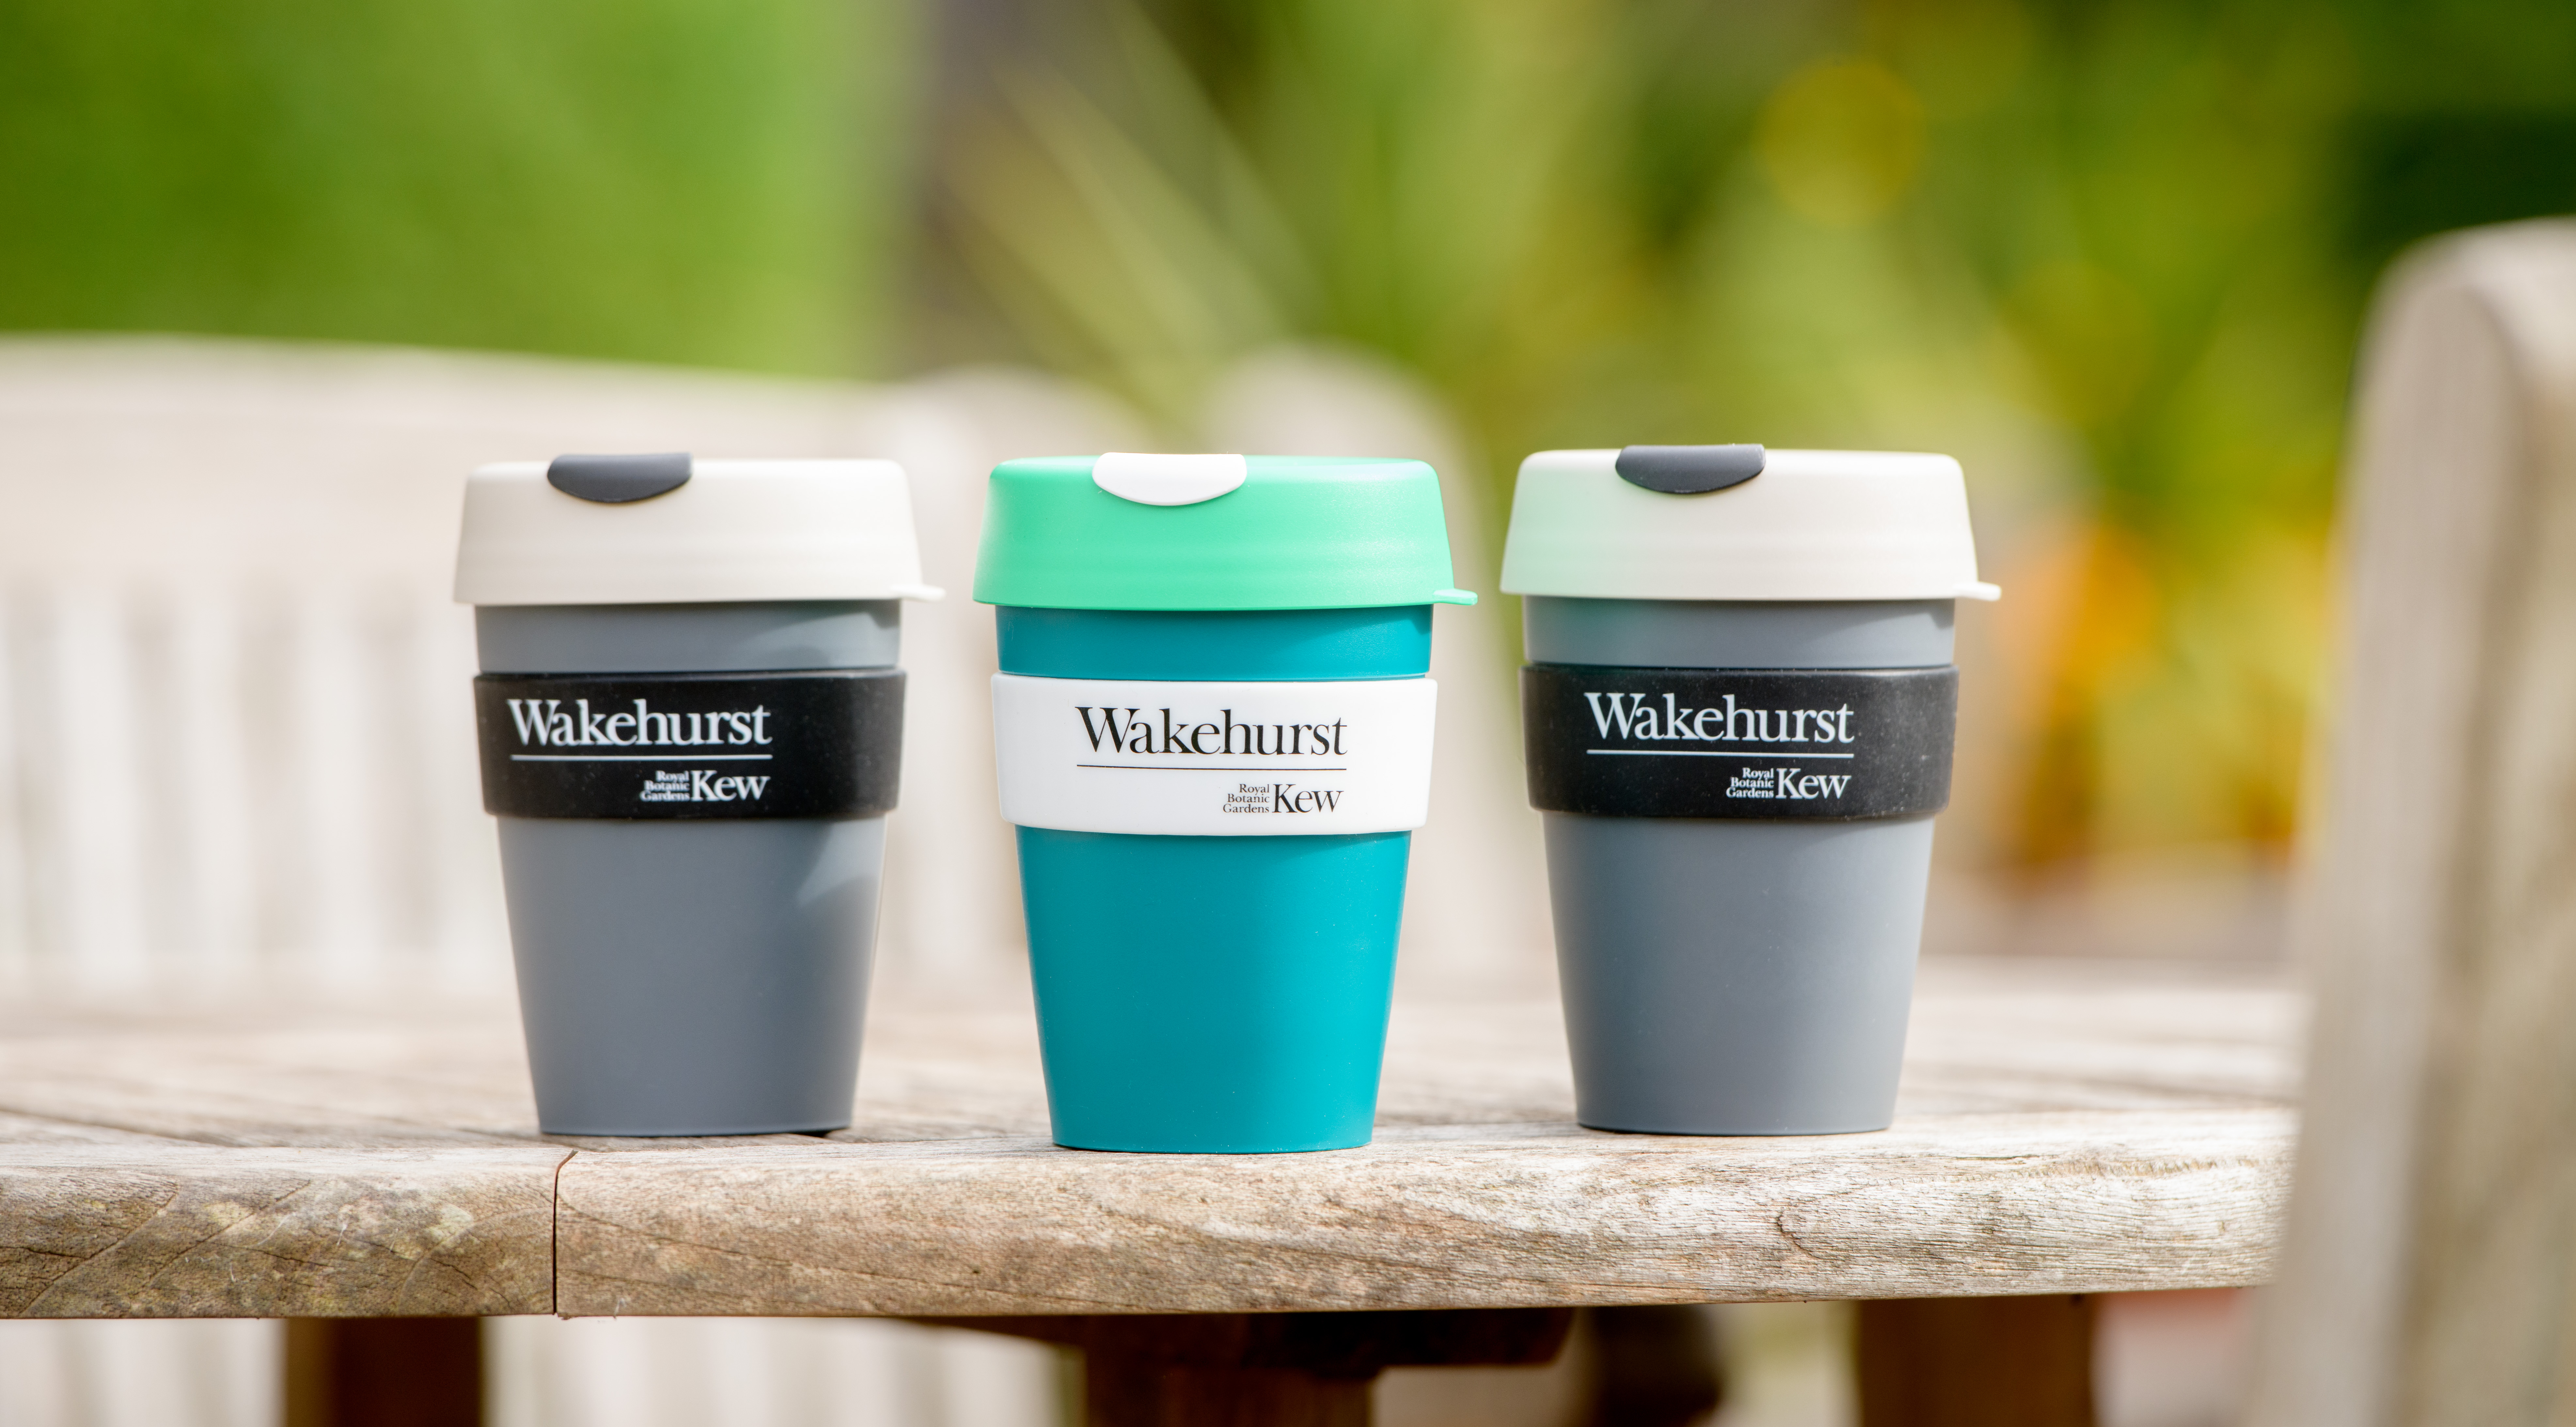 Wakehurst reusable coffee cups